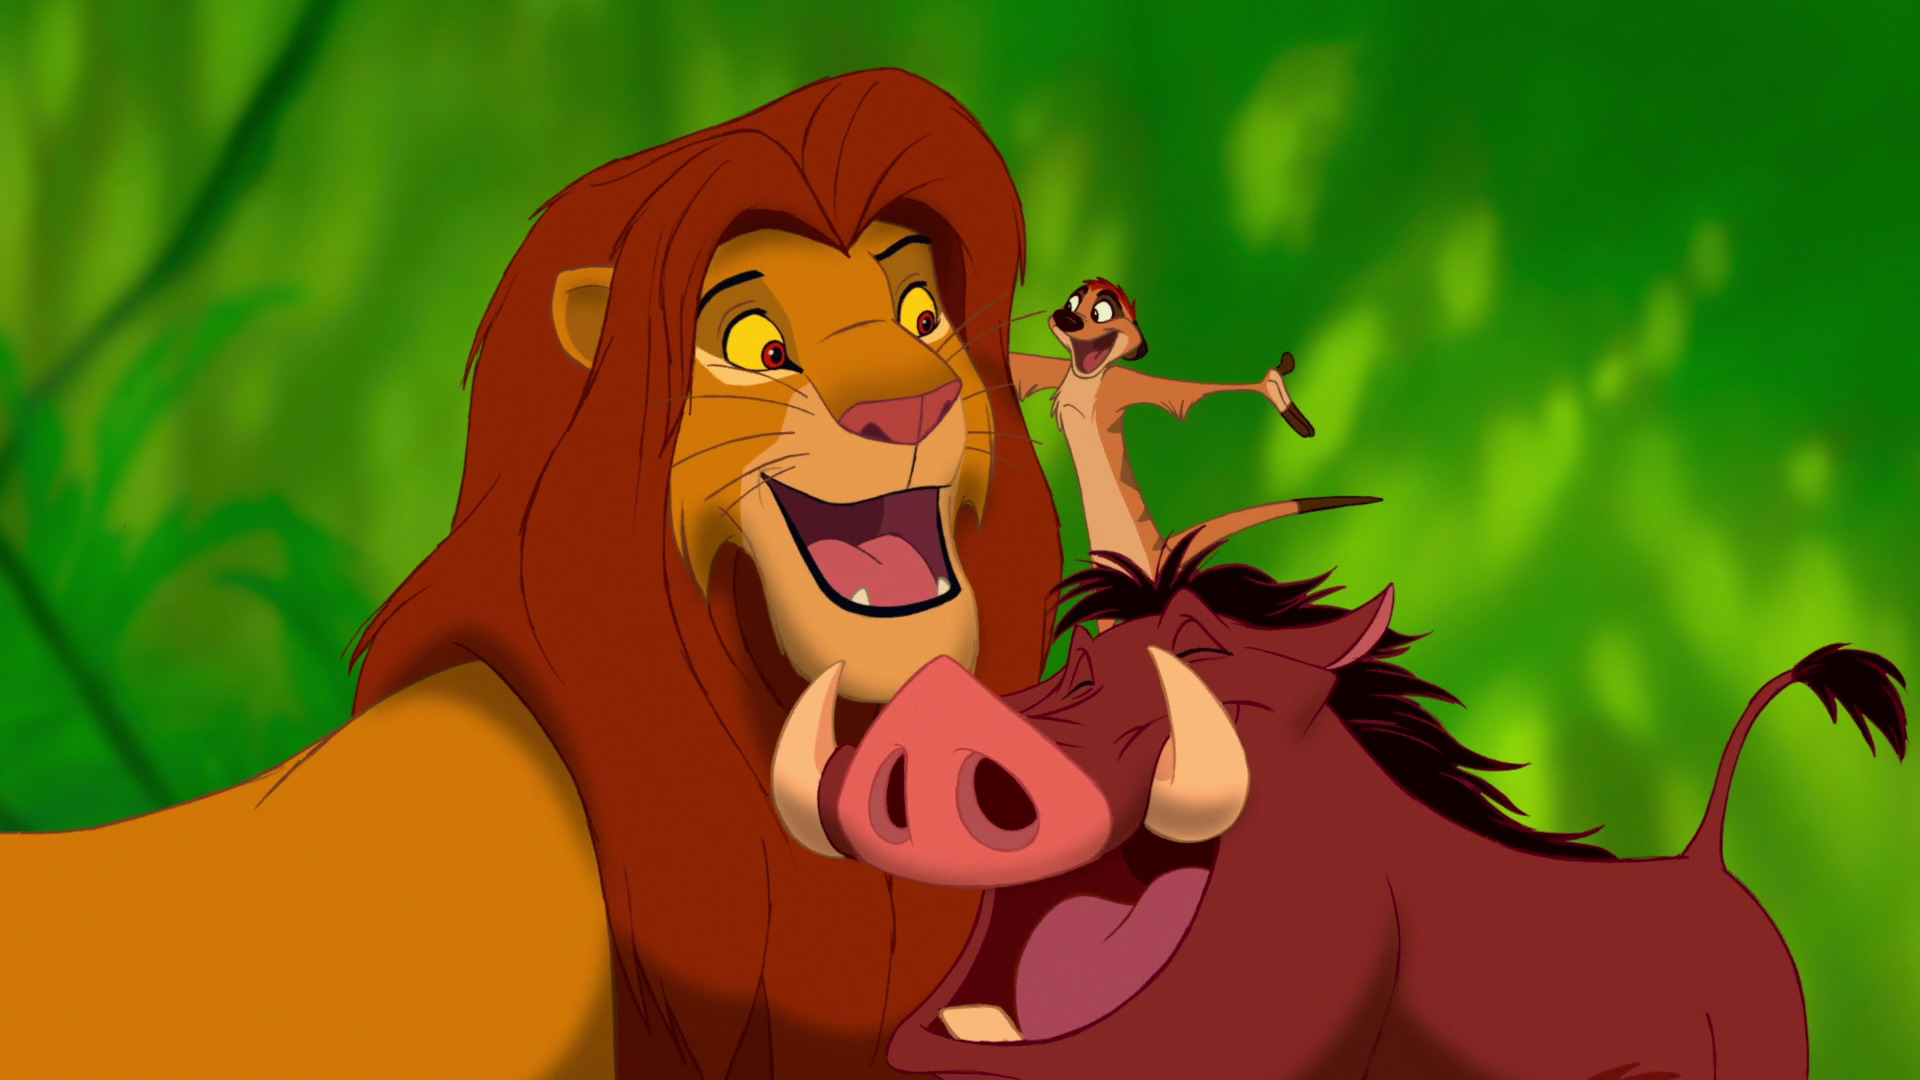 The Lion King - Lion King Timon Pumbaa And Simba , HD Wallpaper & Backgrounds